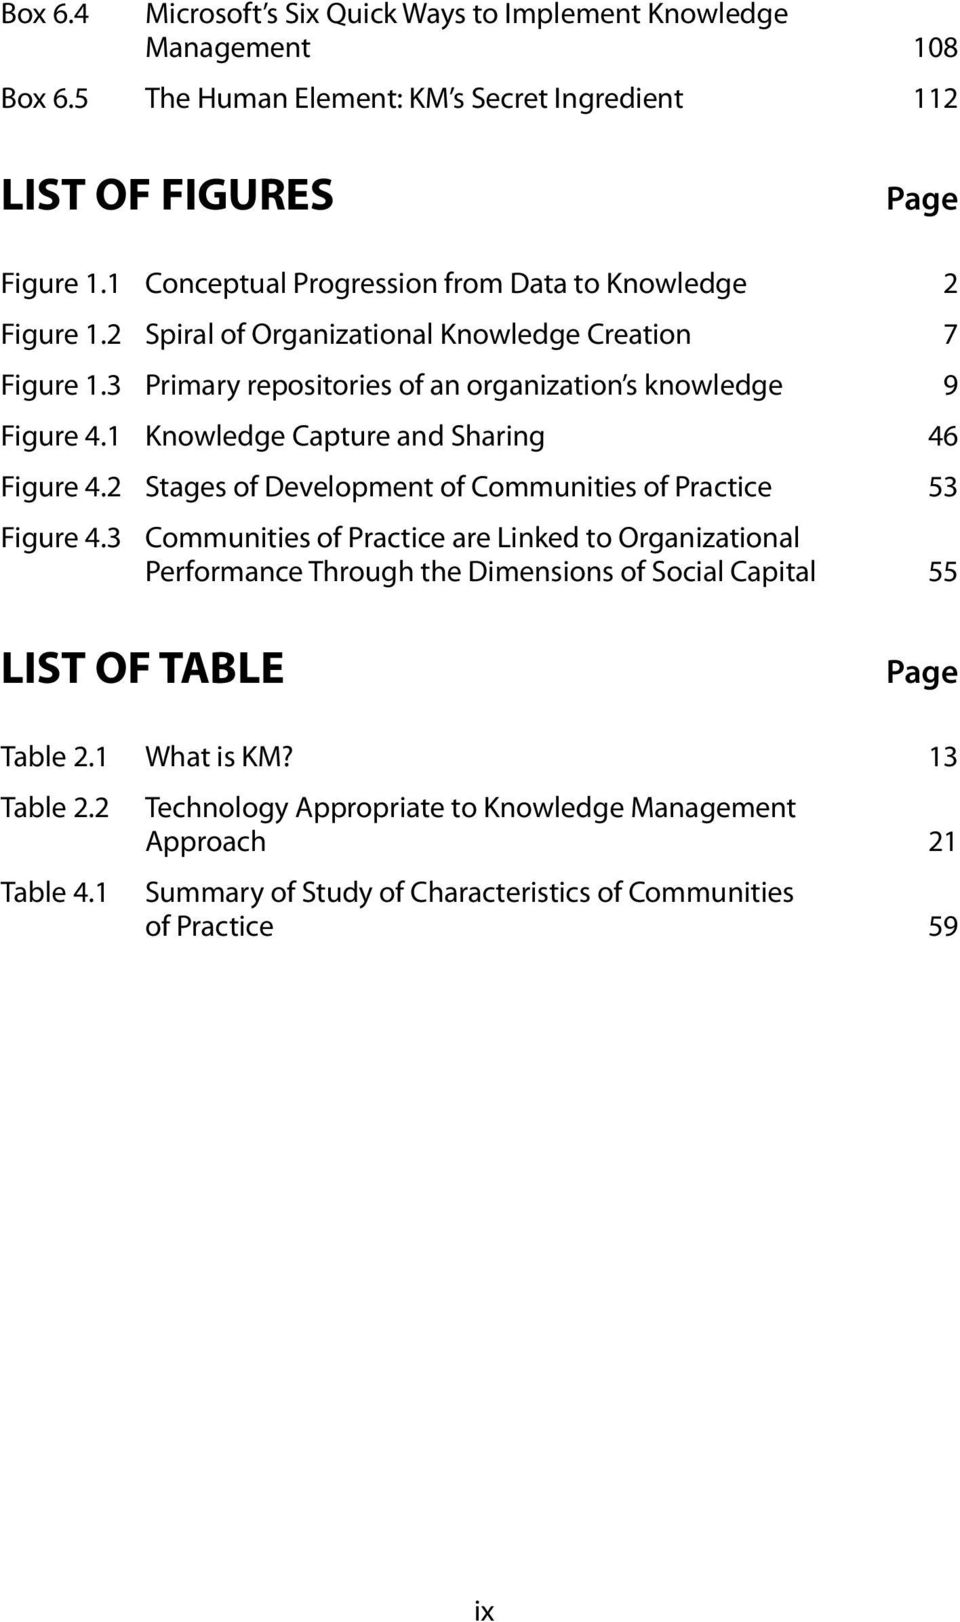 1 Knowledge Capture and Sharing 46 Figure 4.2 Stages of Development of Communities of Practice 53 Figure 4.